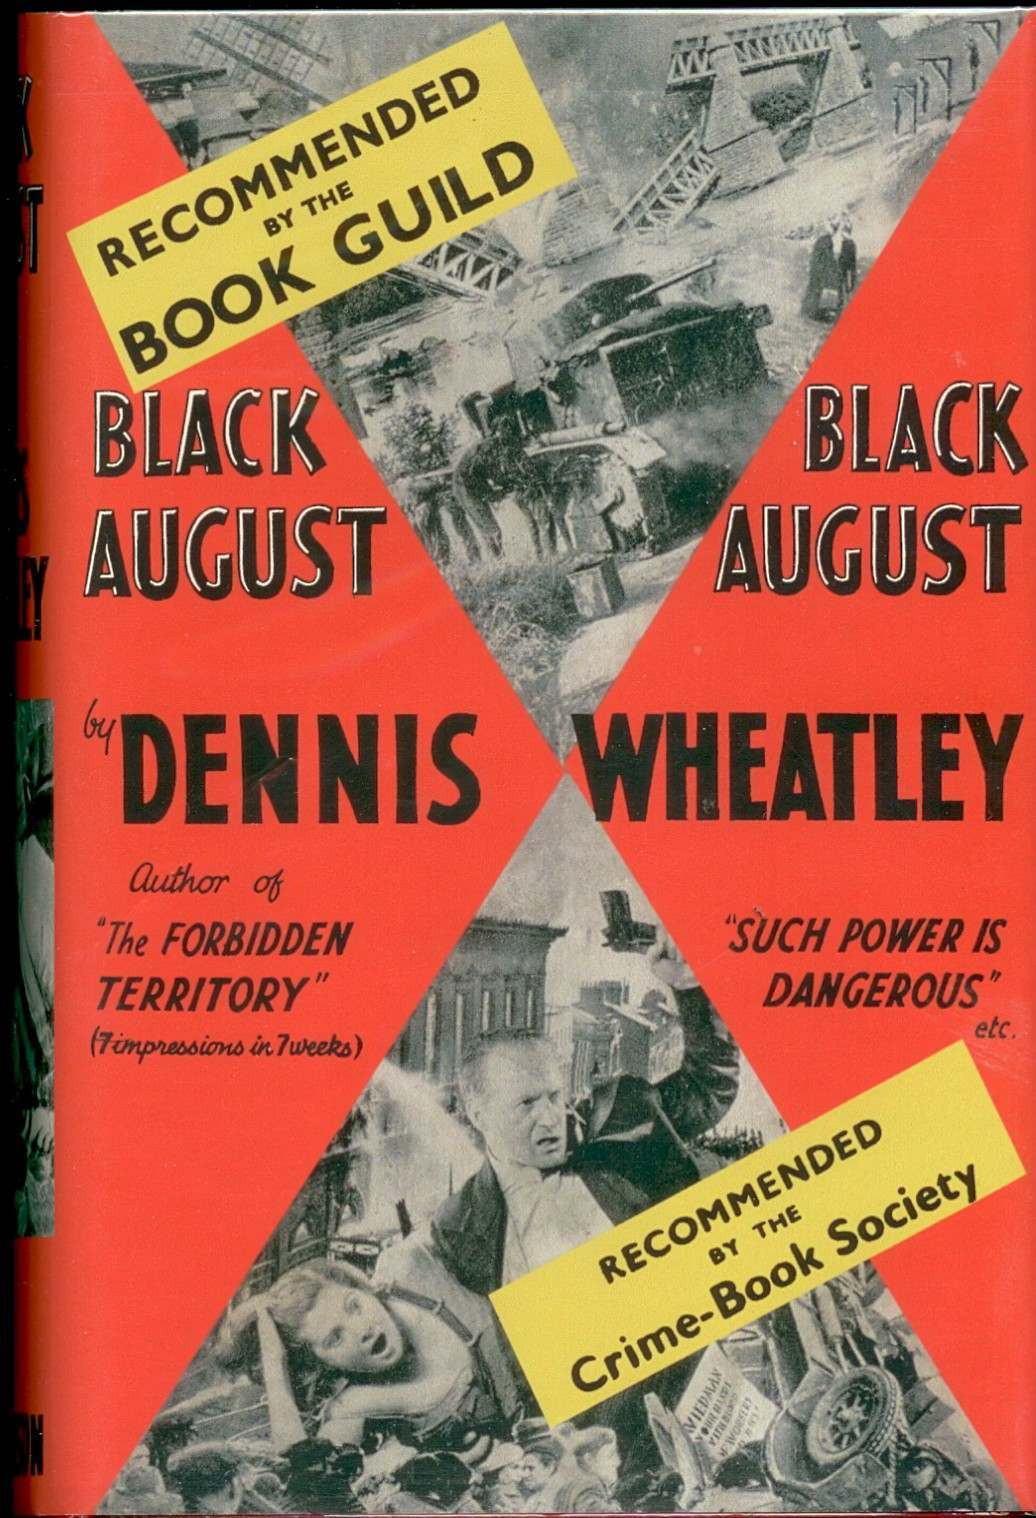 Black August published in 1934.